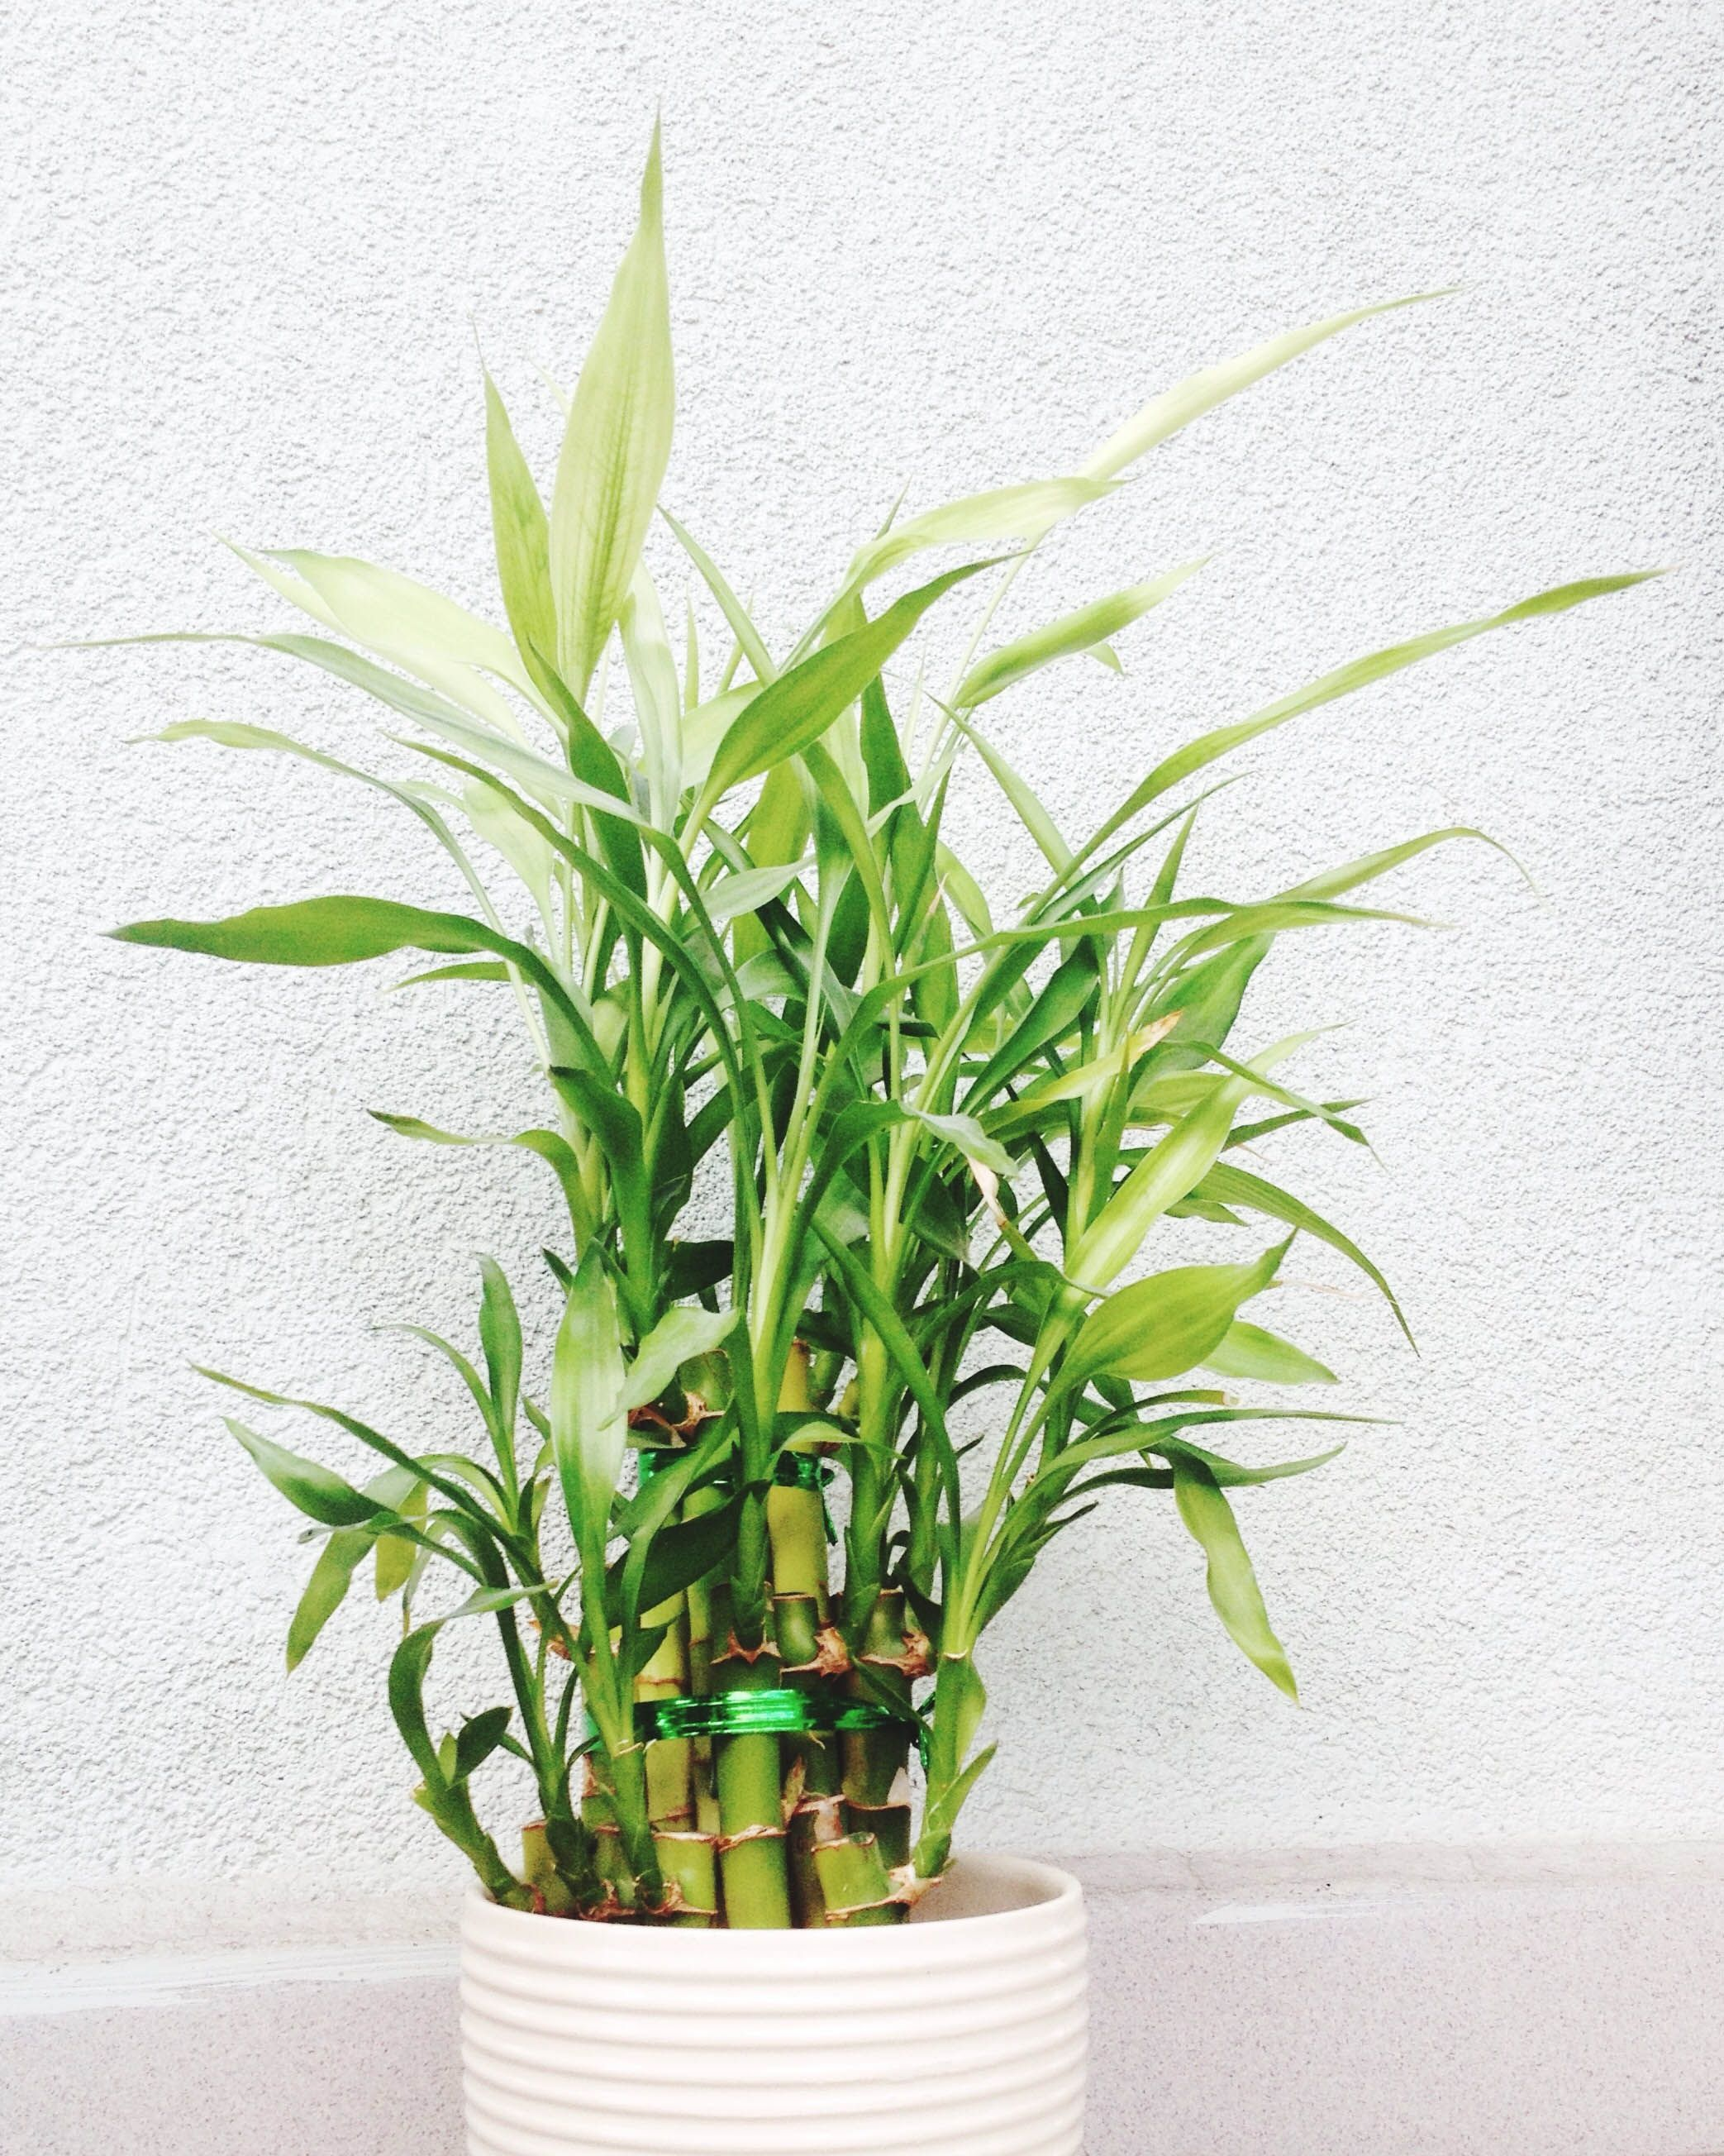 10 Plants That Wont Die On Your Desk At Work